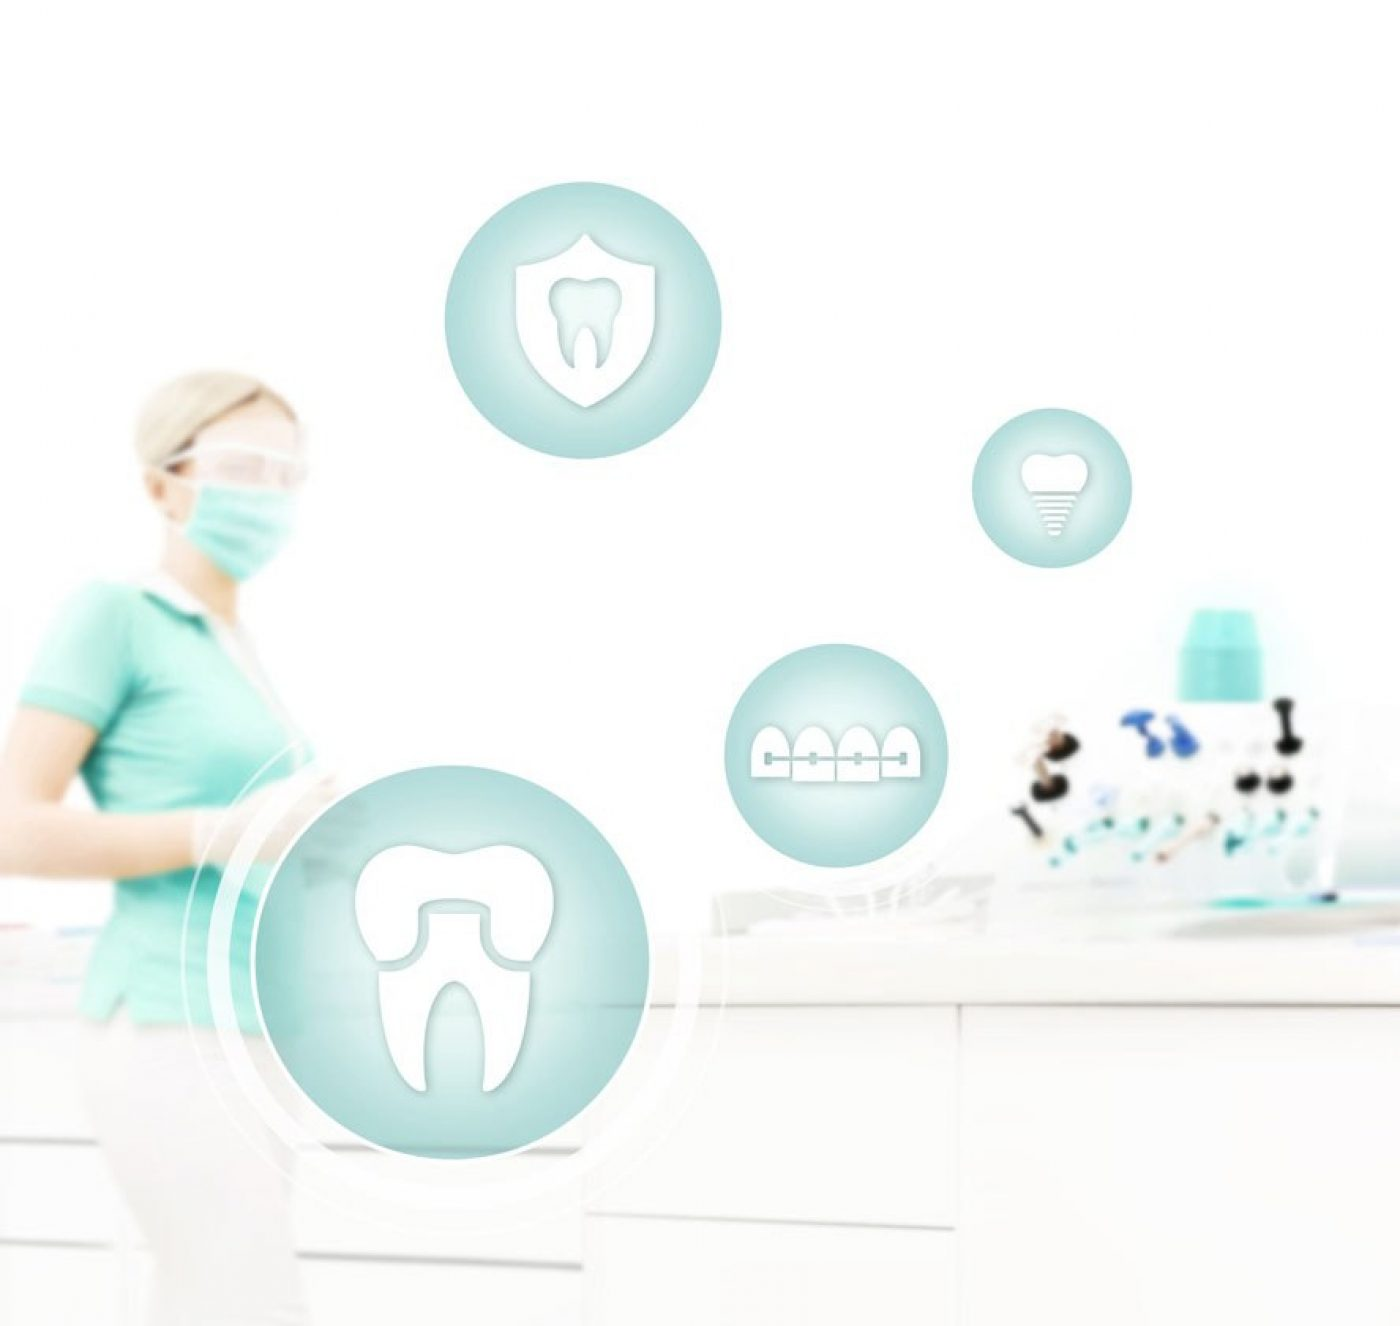 Freemanrosser Carmarthen Advicecare Commondentalconditions